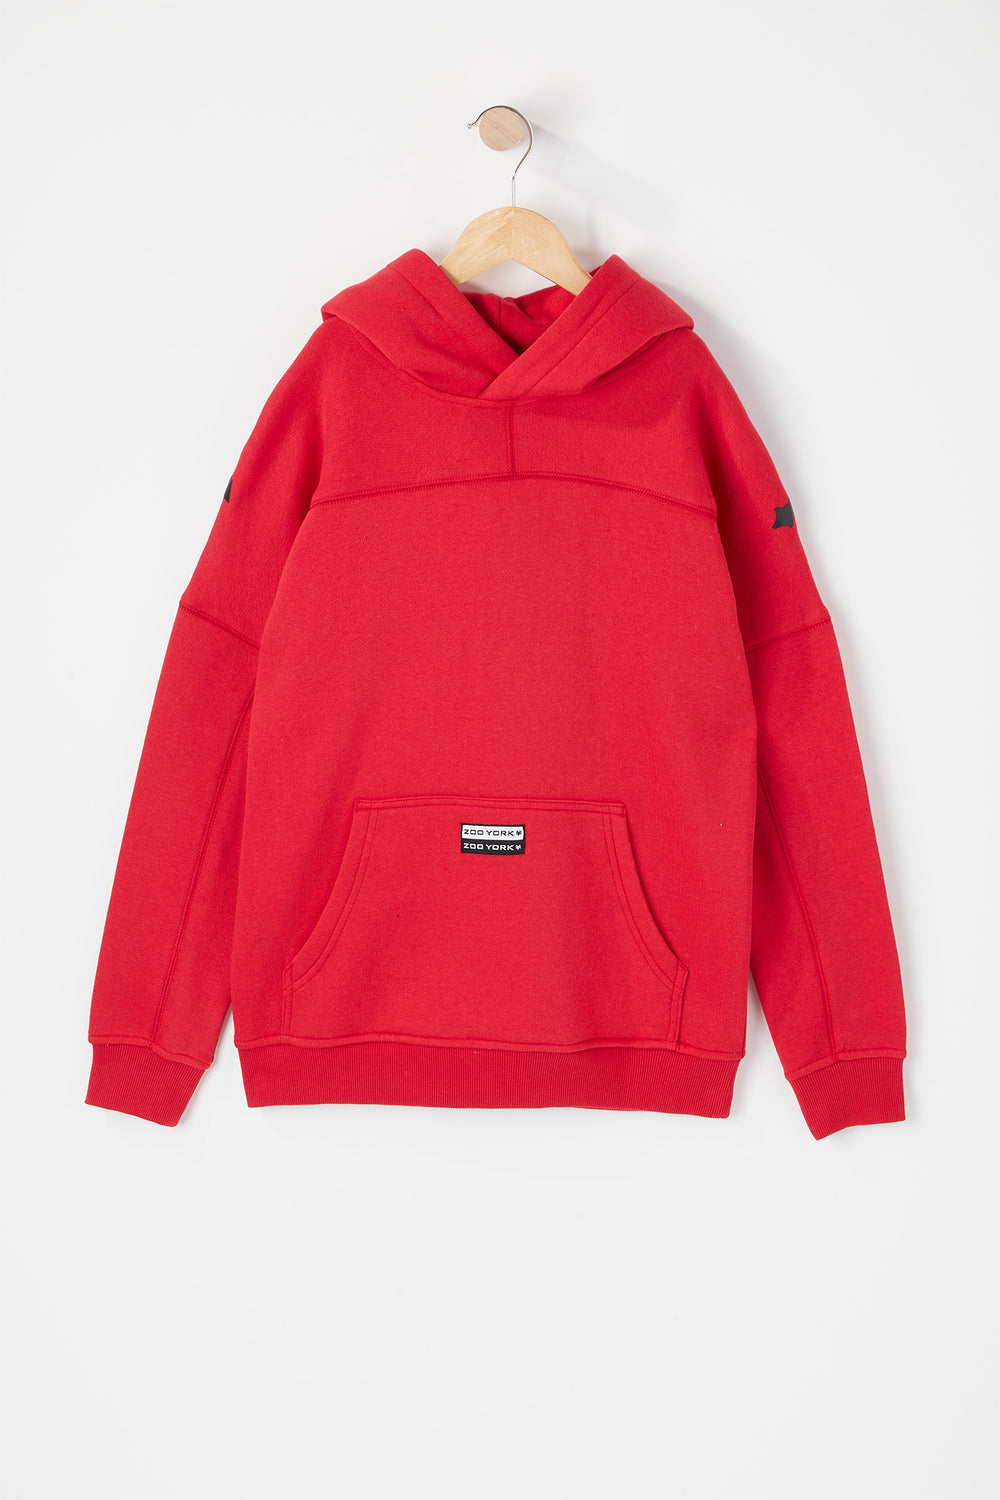 Zoo York Youth Large Shoulder Print Hoodie Red